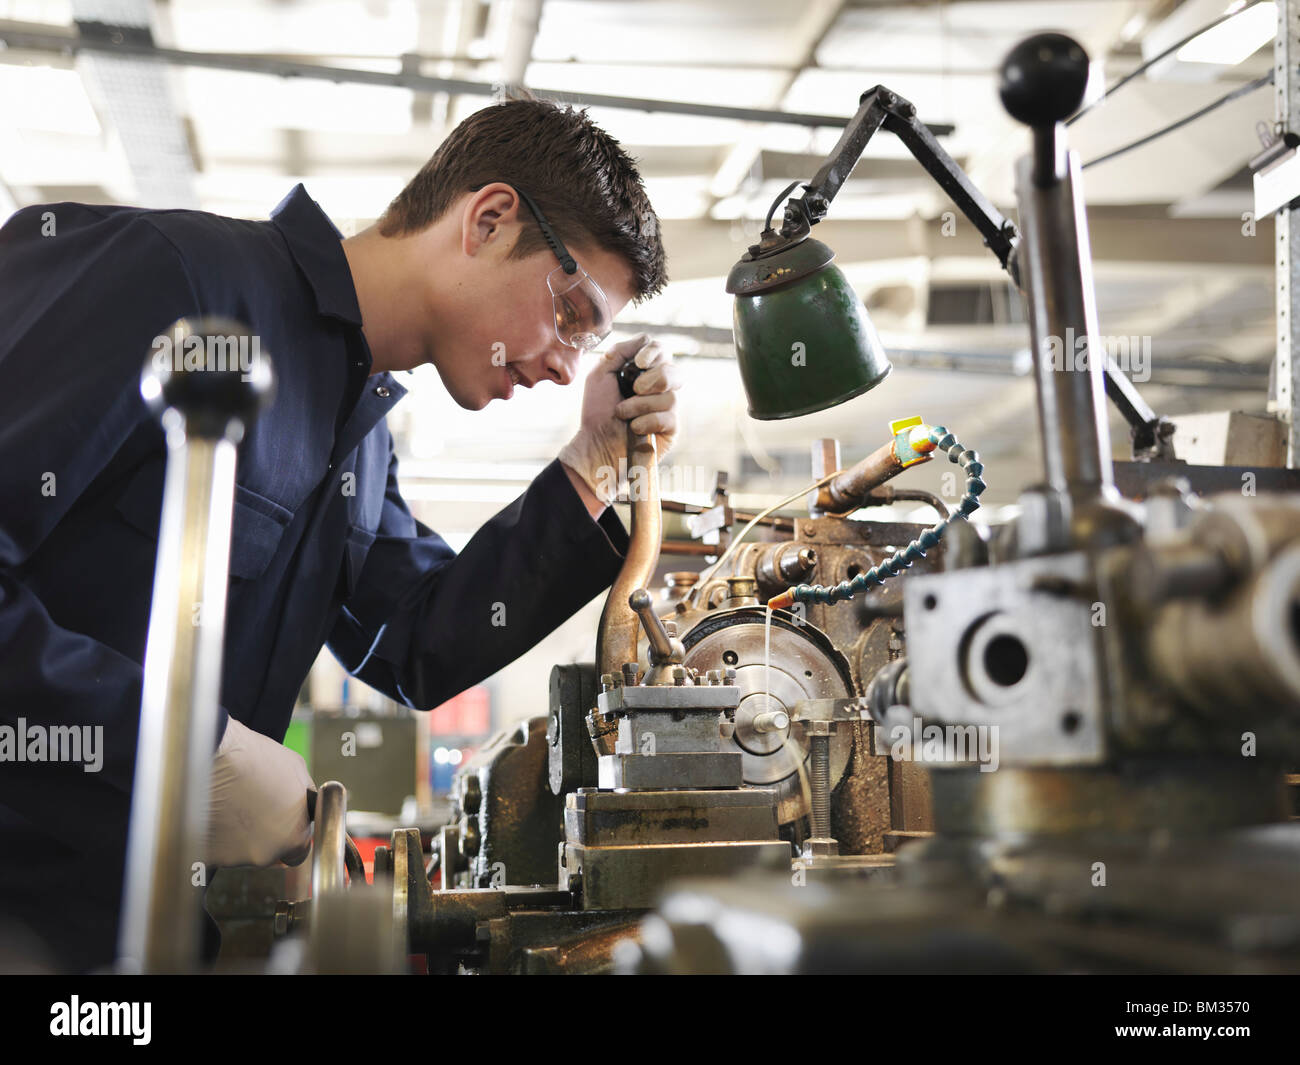 Apprentice Working With Basic Lathe - Stock Image